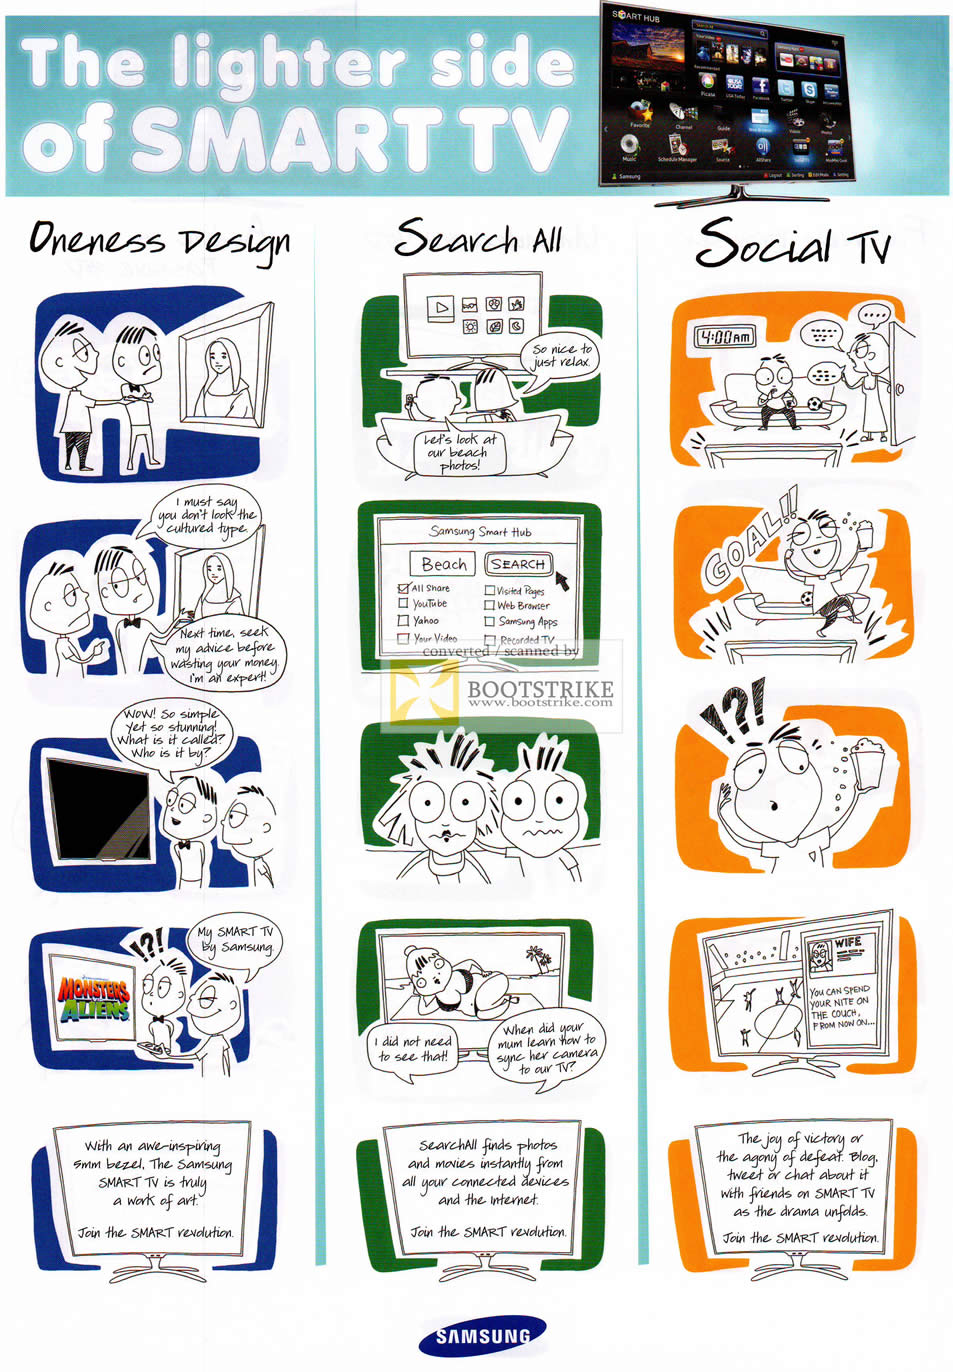 COMEX 2011 price list image brochure of Samsung Smart TV Comic Strip Oneness Design Search All Social TV